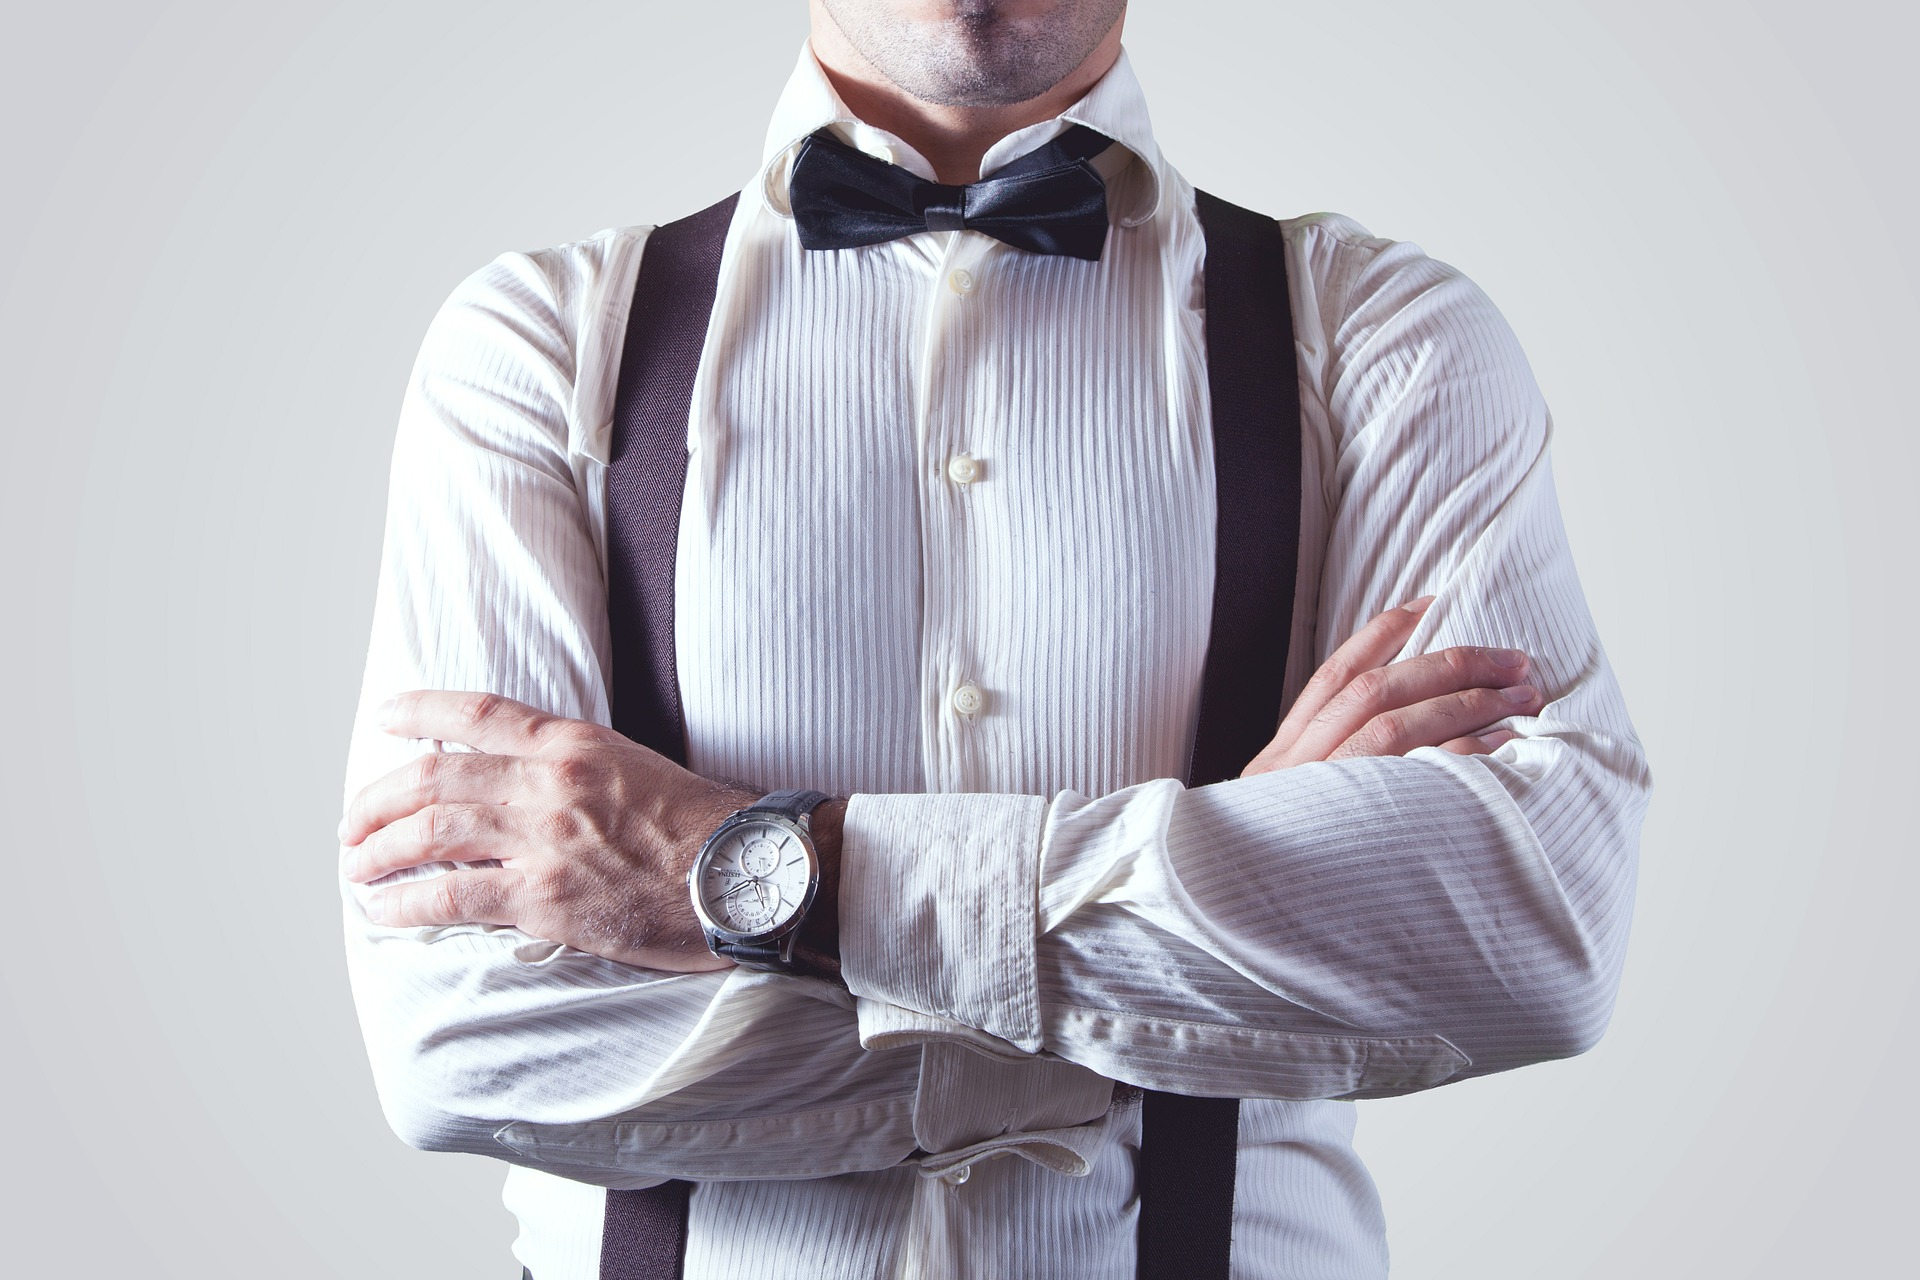 man wearing white ribbed shirt with braces and bow tie with a wristwatch